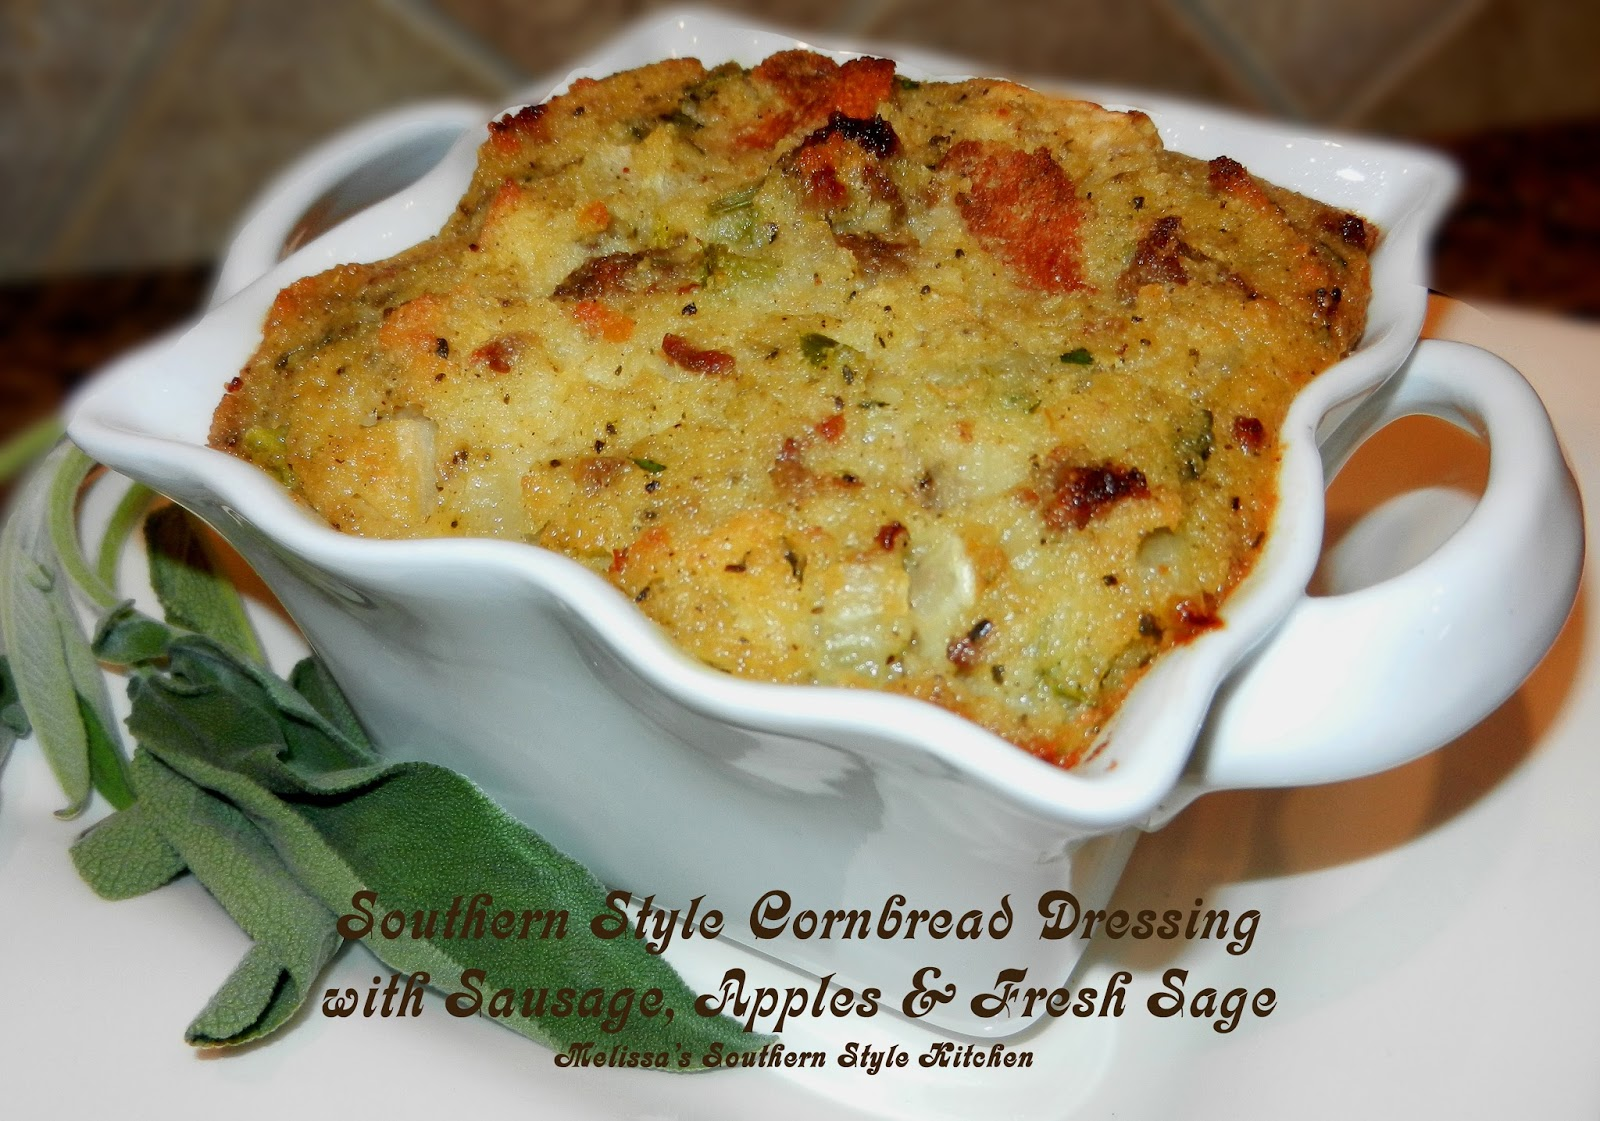 Southern Style Cornbread Dressing with Sausage, Apples & Fresh Sage